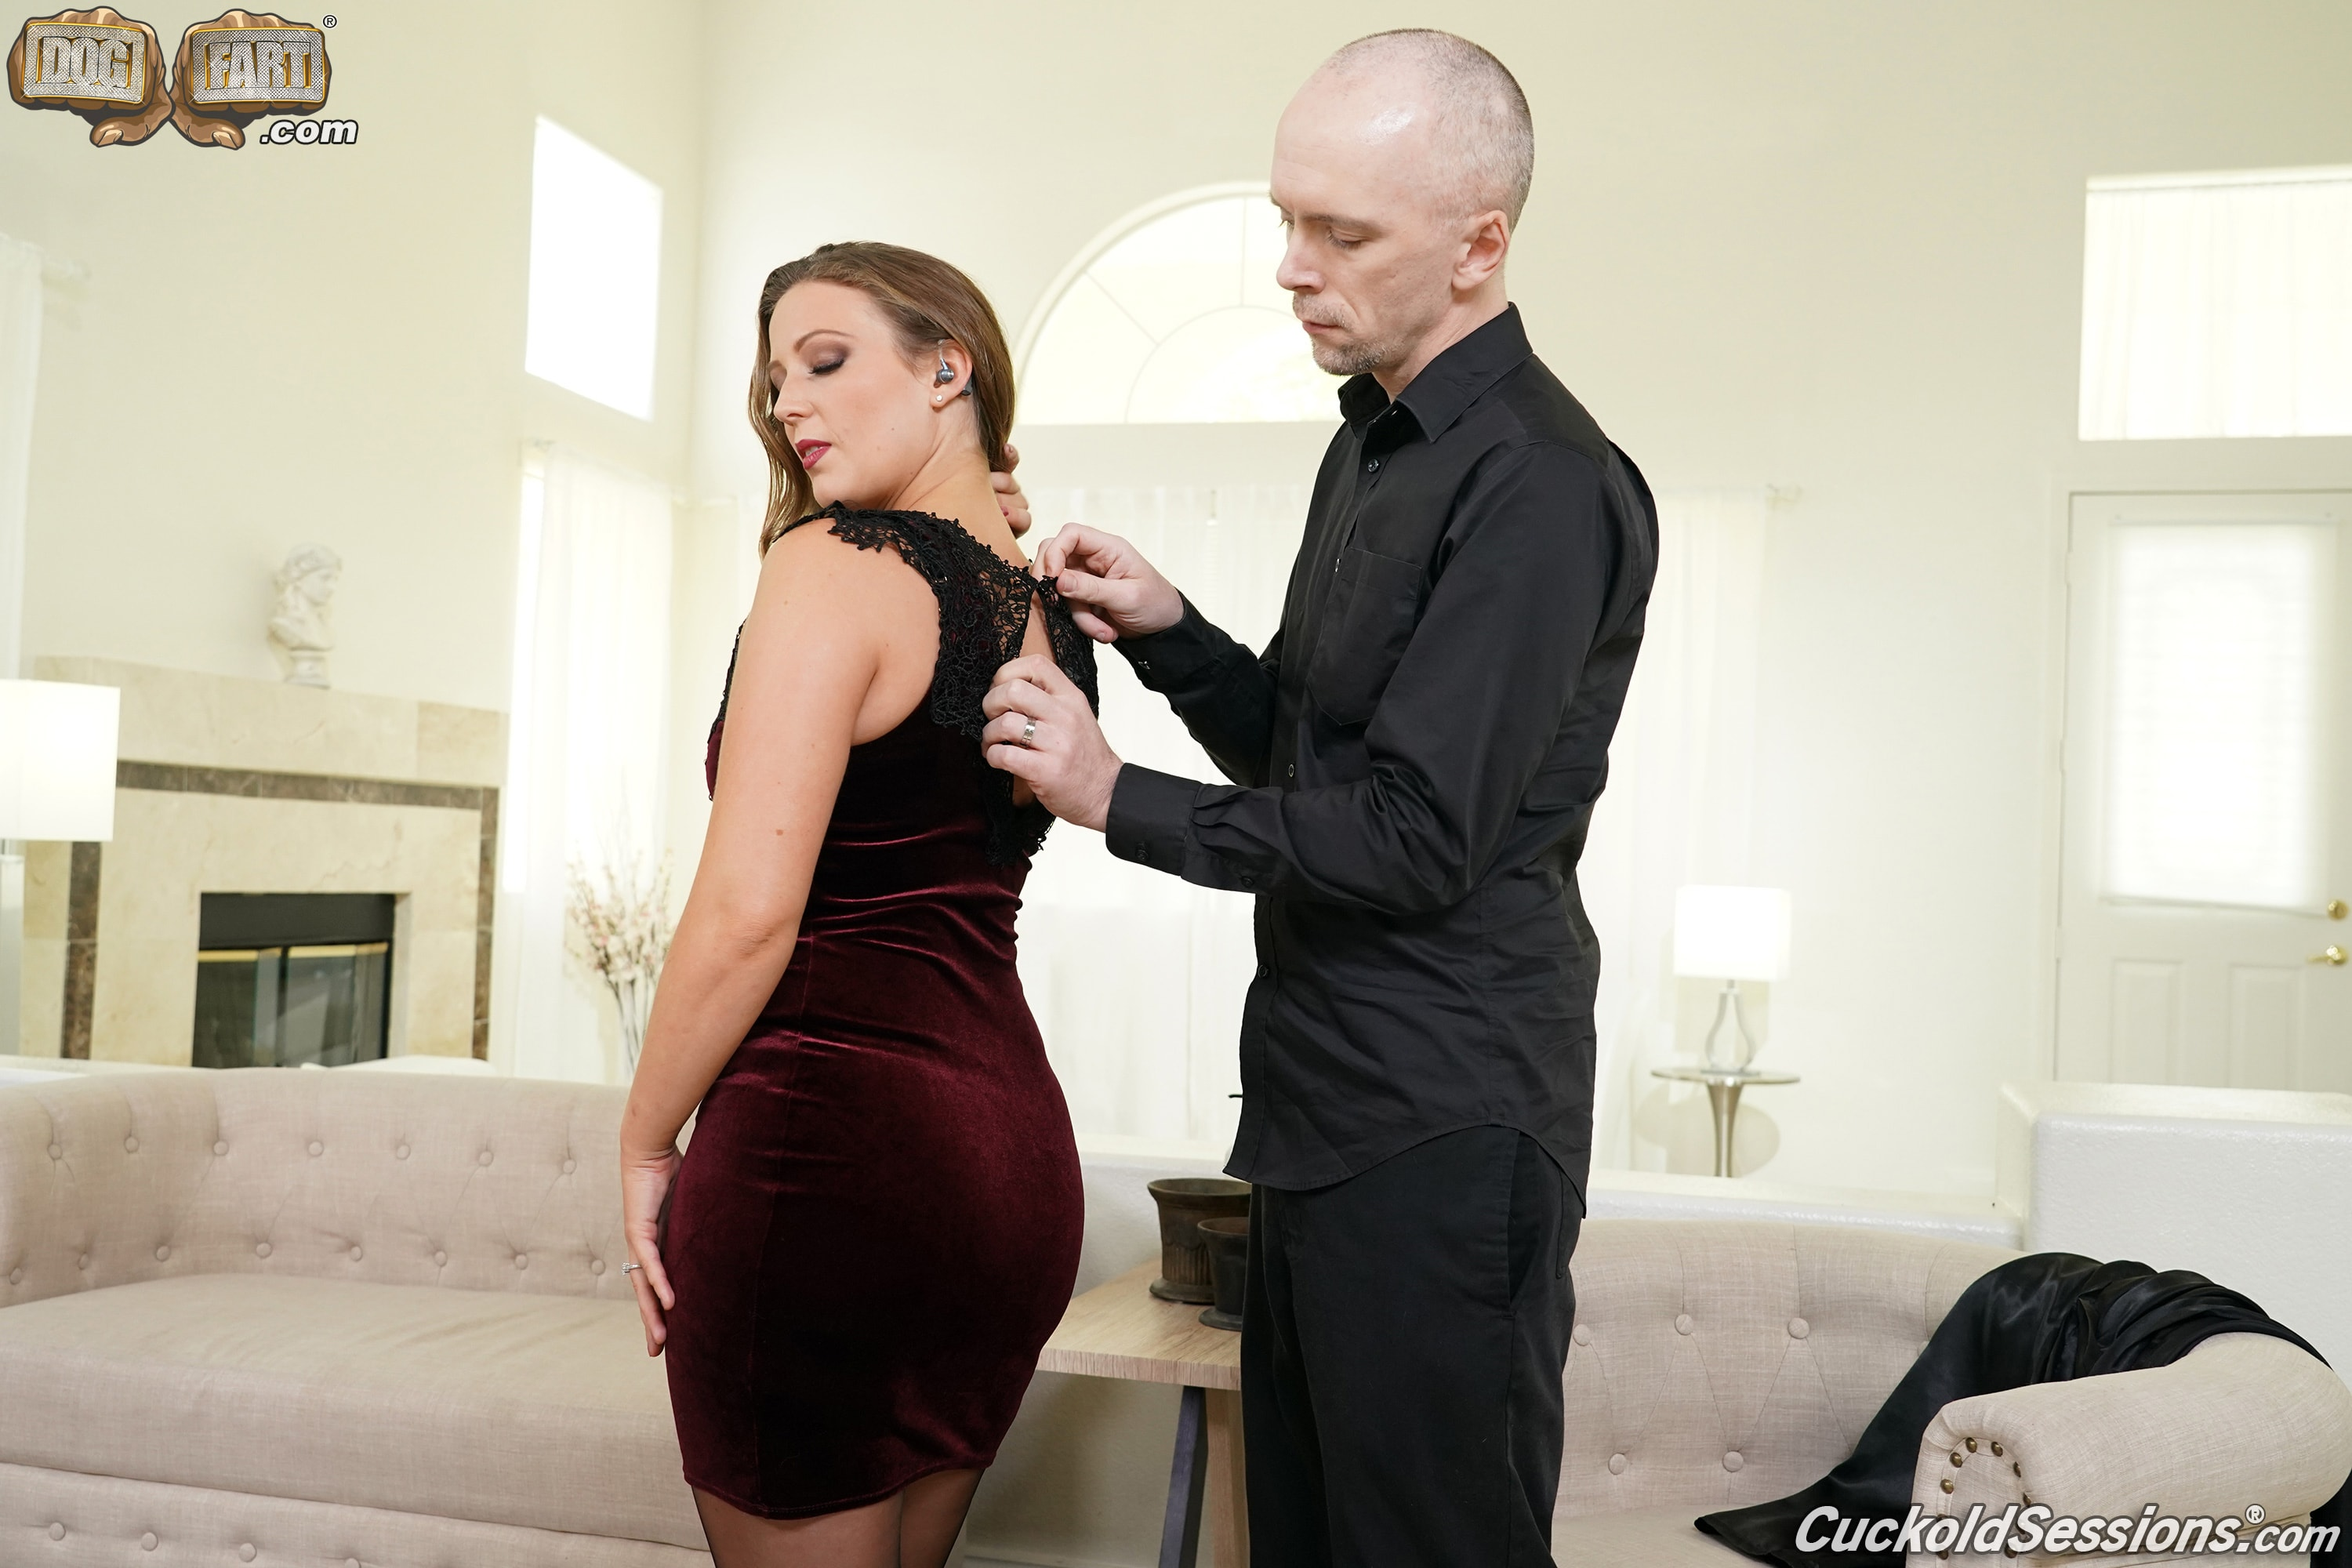 Dogfart '- Cuckold Sessions' starring Febby Twigs (Photo 10)